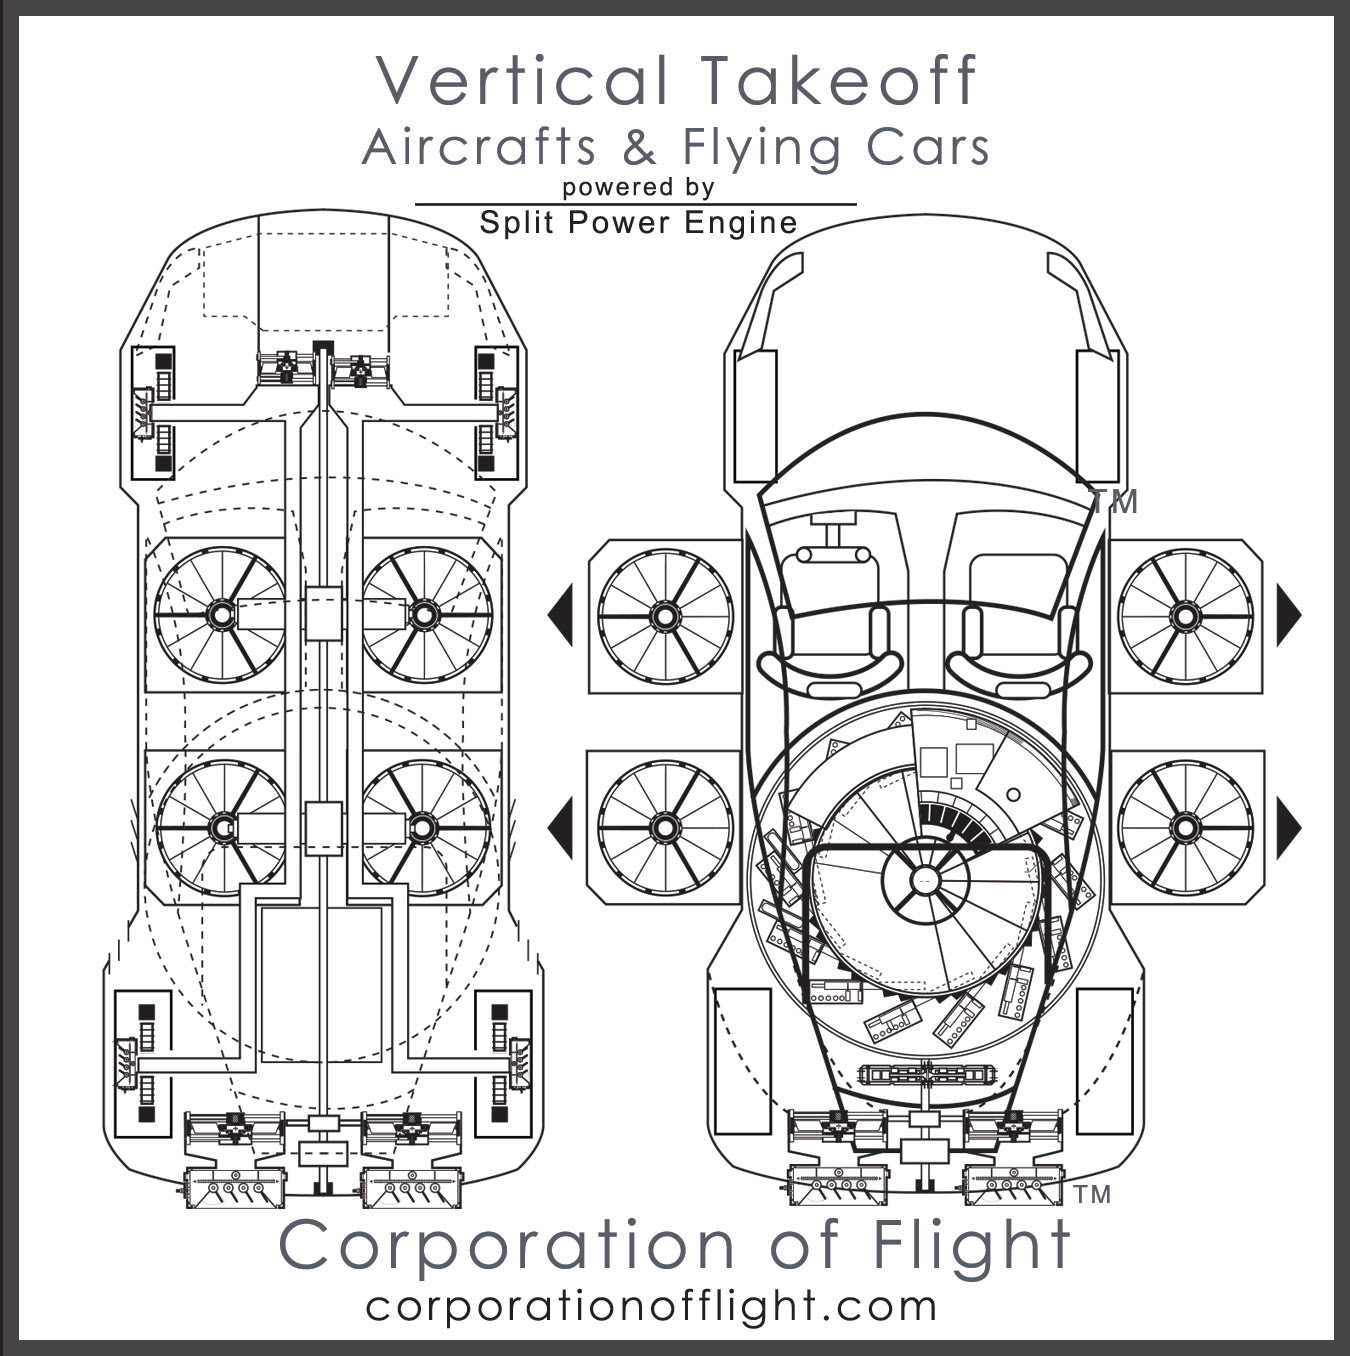 Flying Cars Now a Reality With New Innovative Engine From Corporation of Flight Inc.